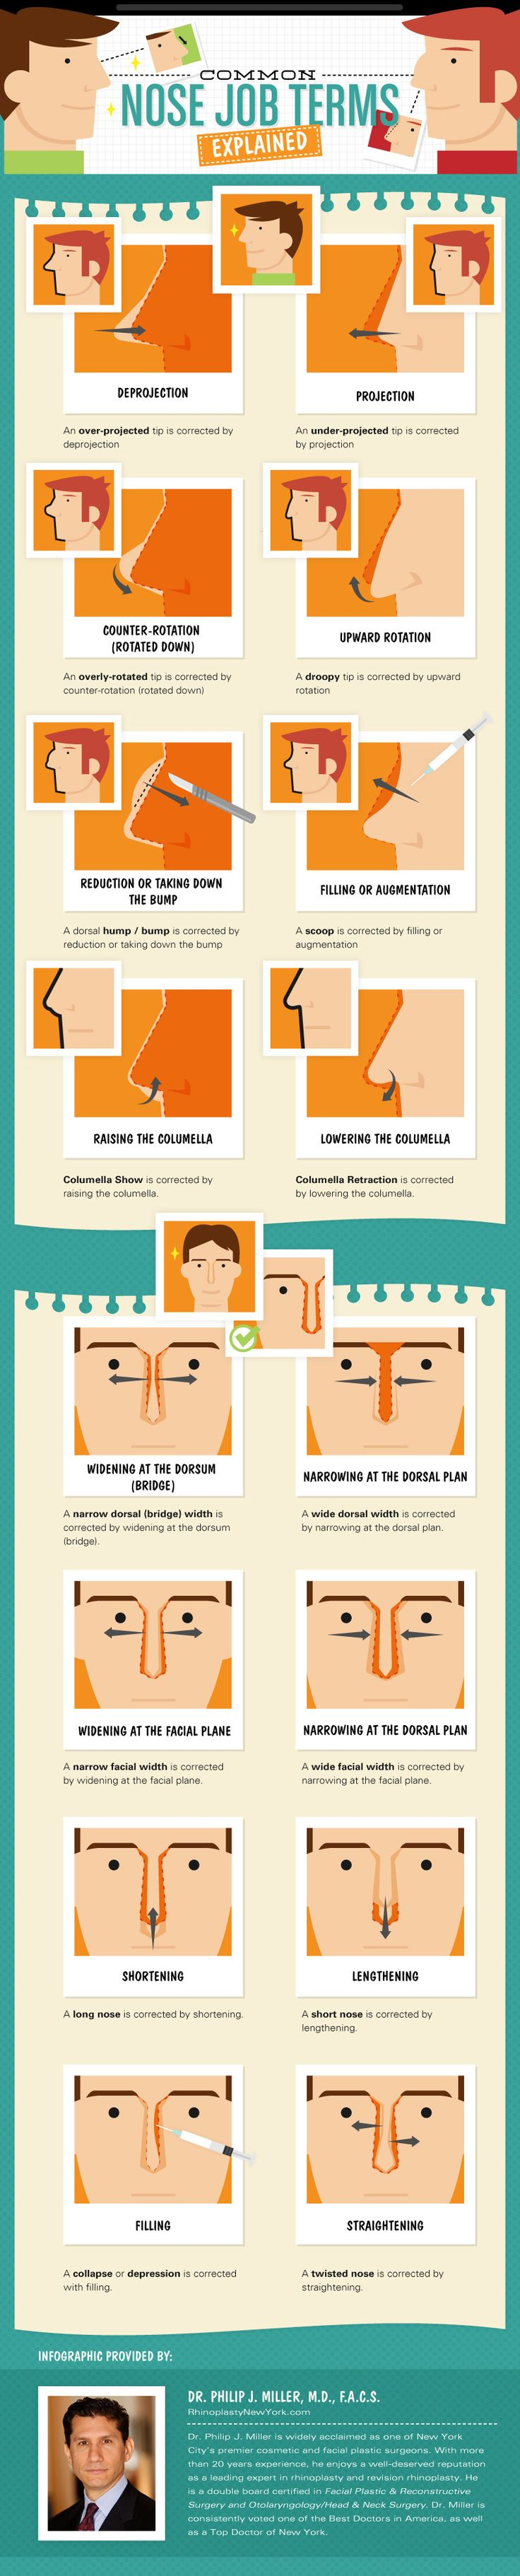 Common Nose Job Terms Explained #infographic #Health #Surgery